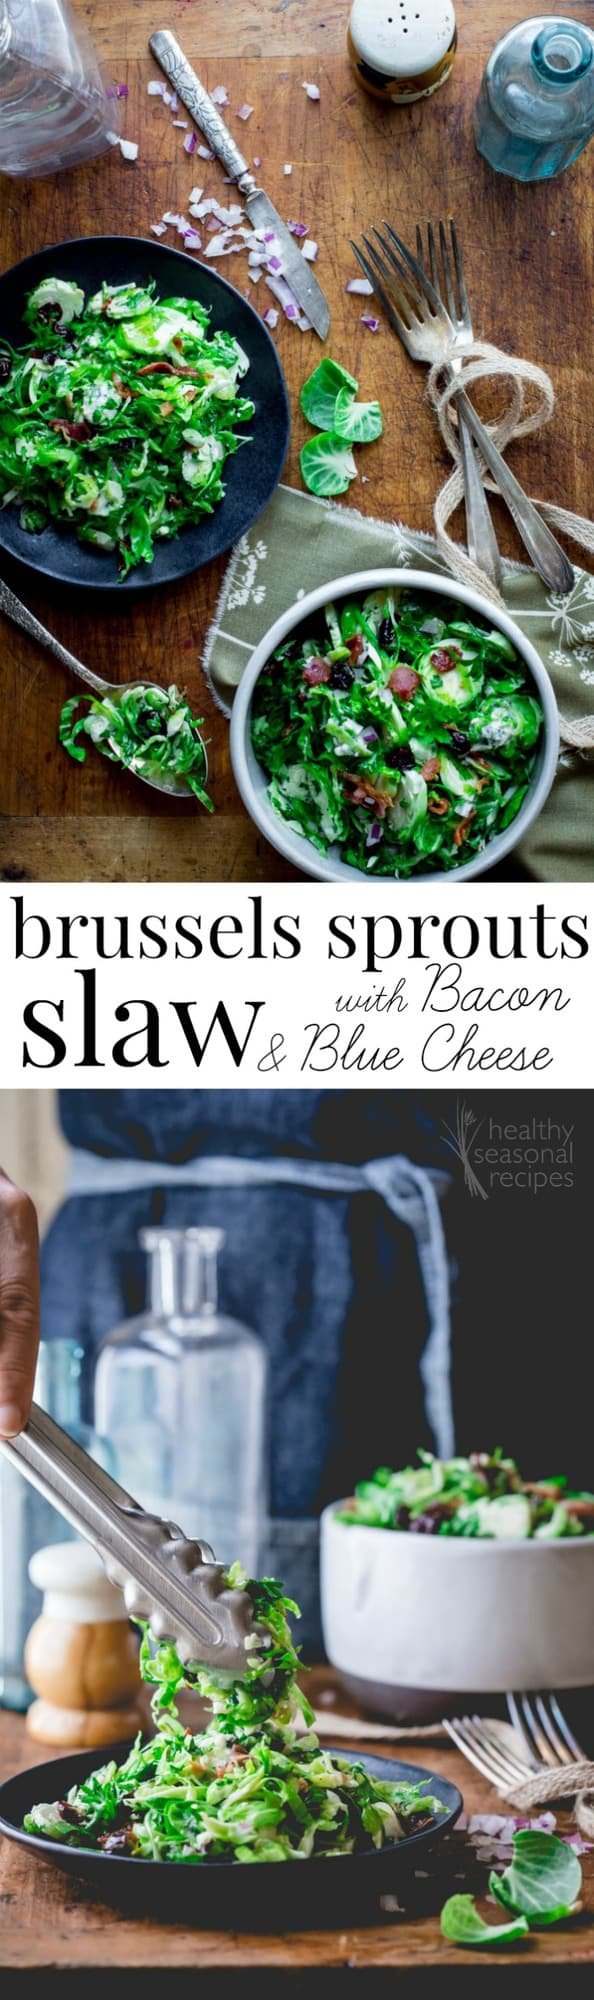 brussels slaw photo collage with text